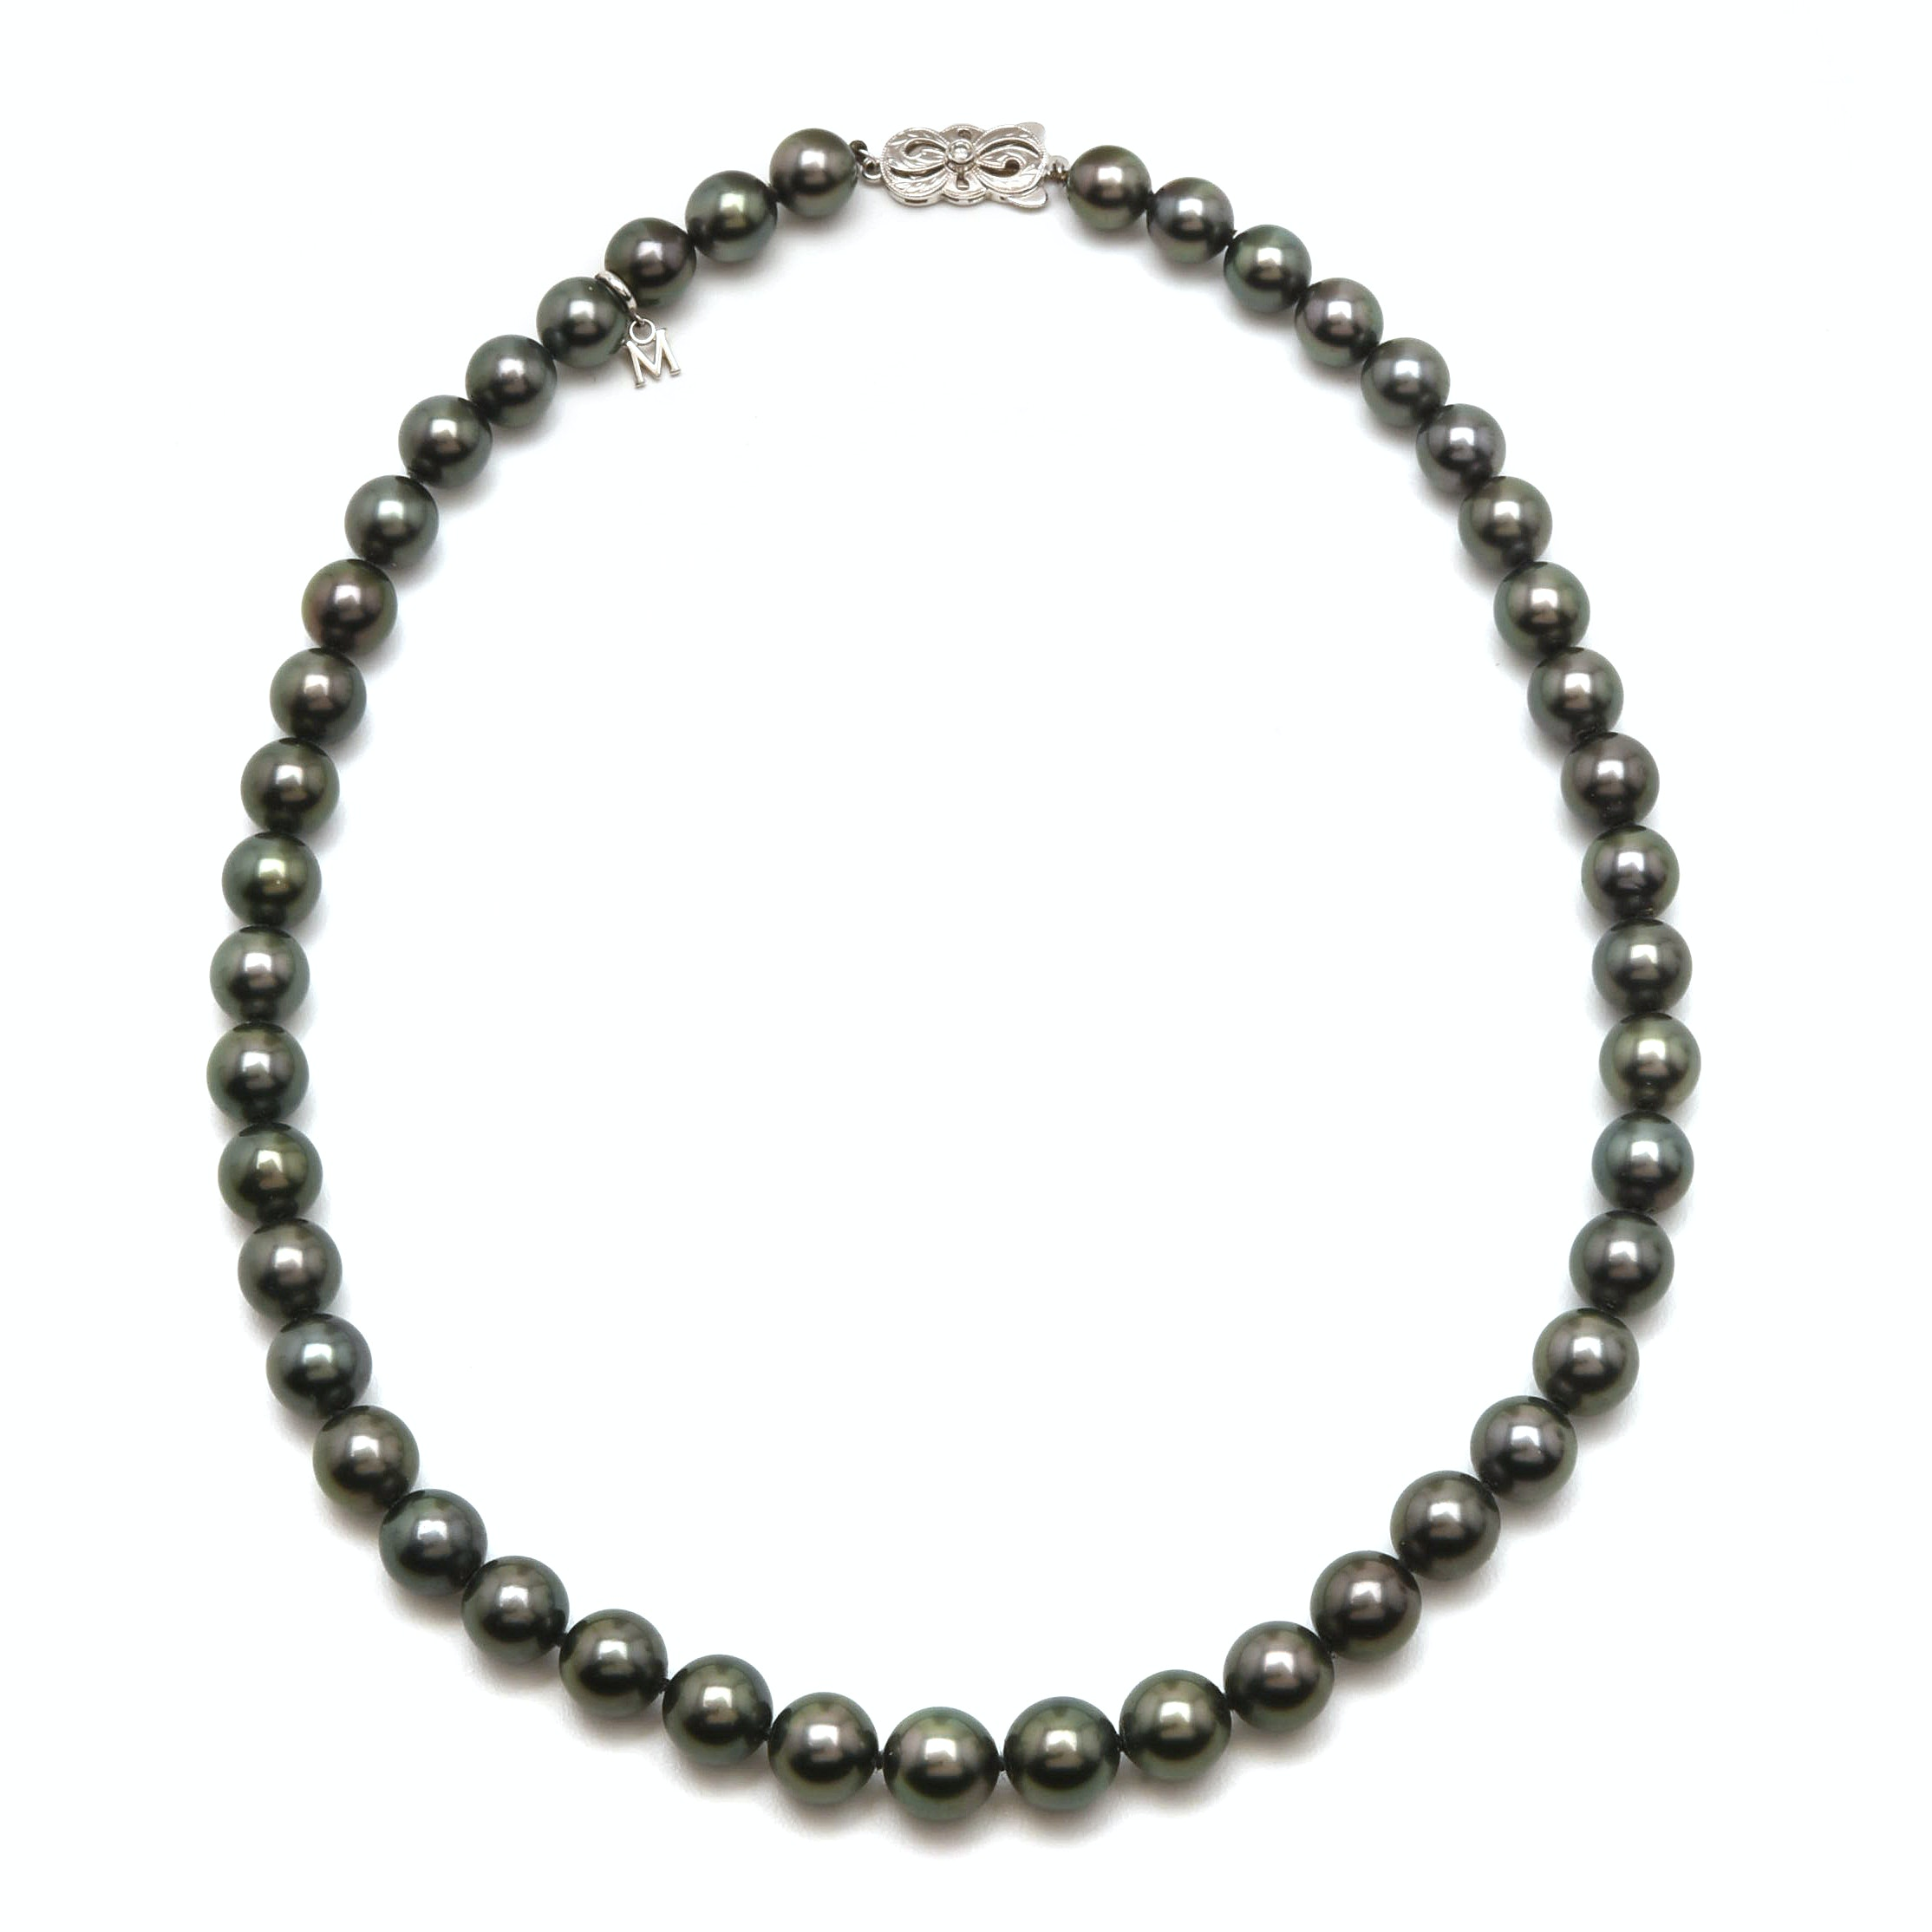 Mikimoto 18K White Gold Black Cultured Pearl Necklace With Diamond Accent